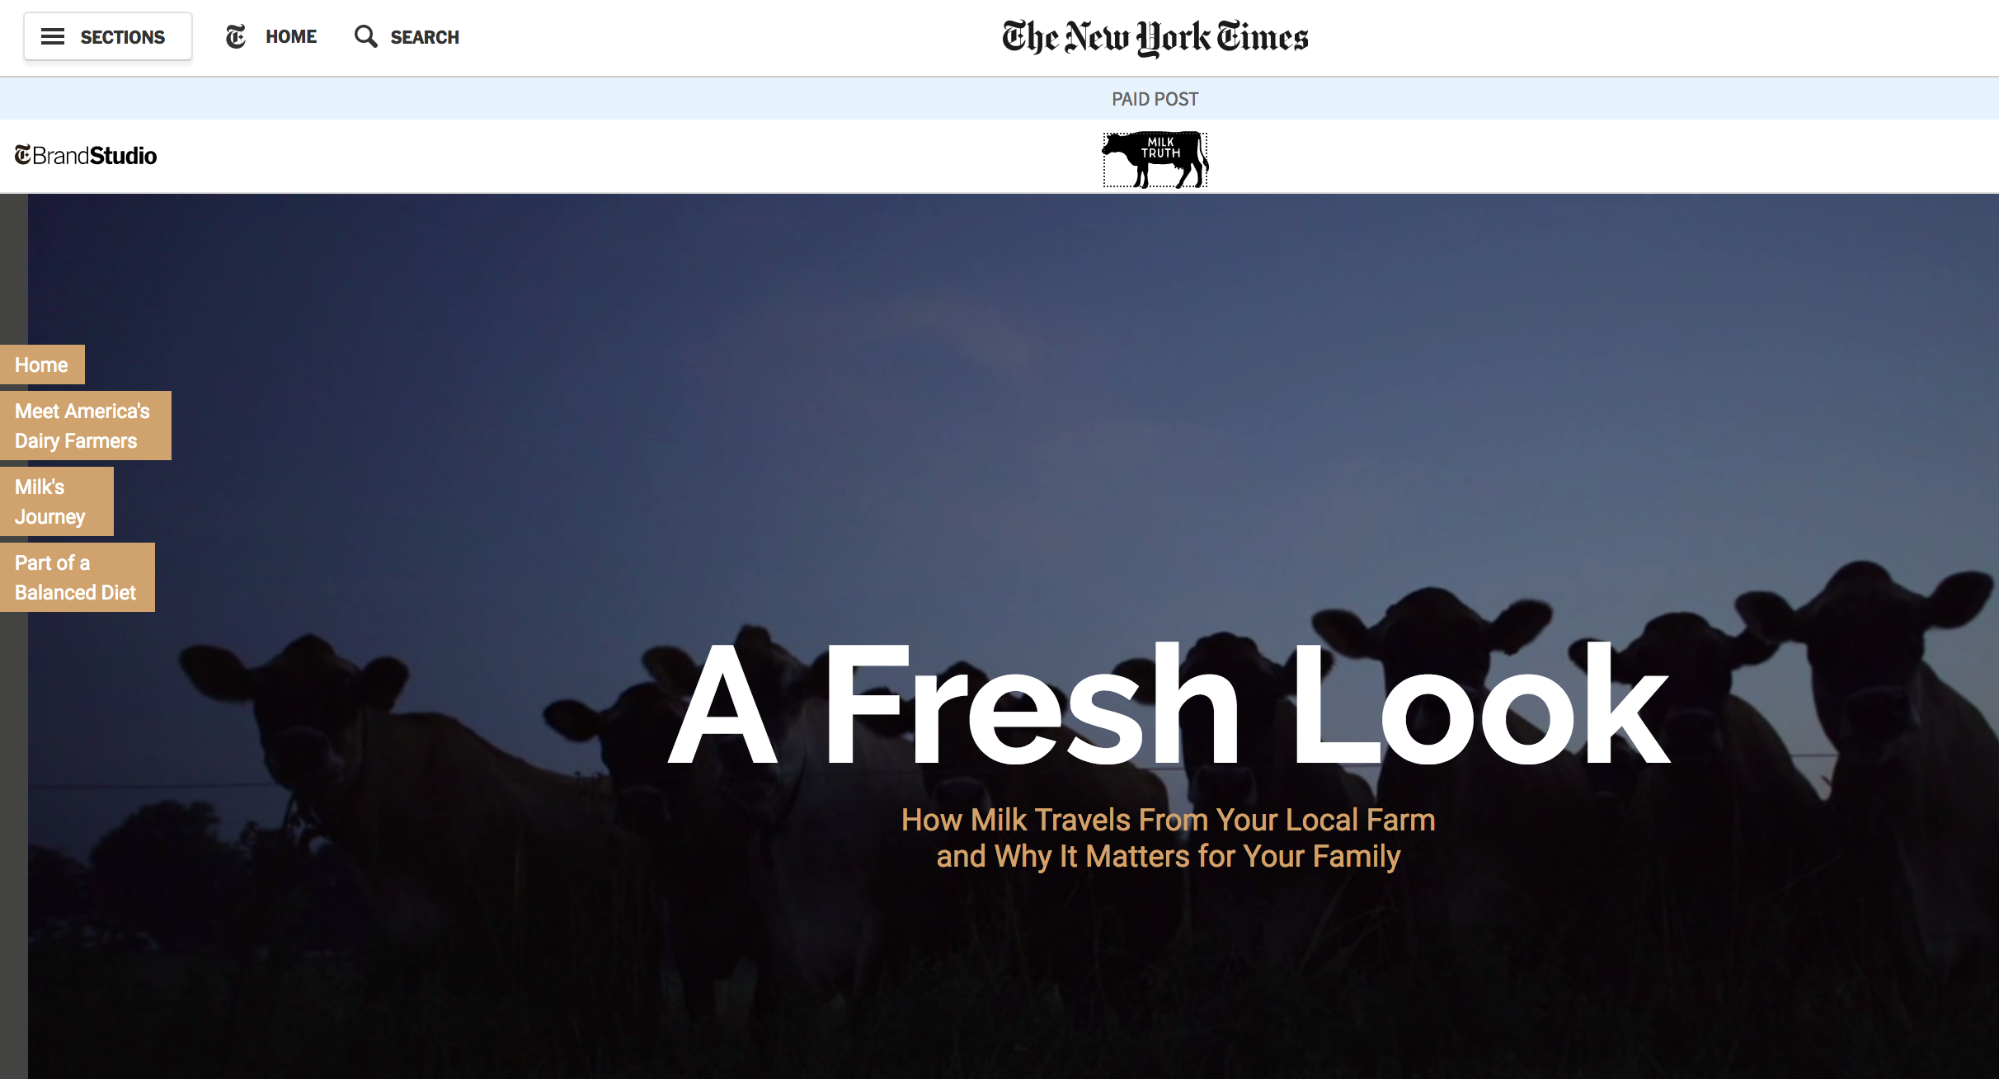 New York Times A Fresh Look